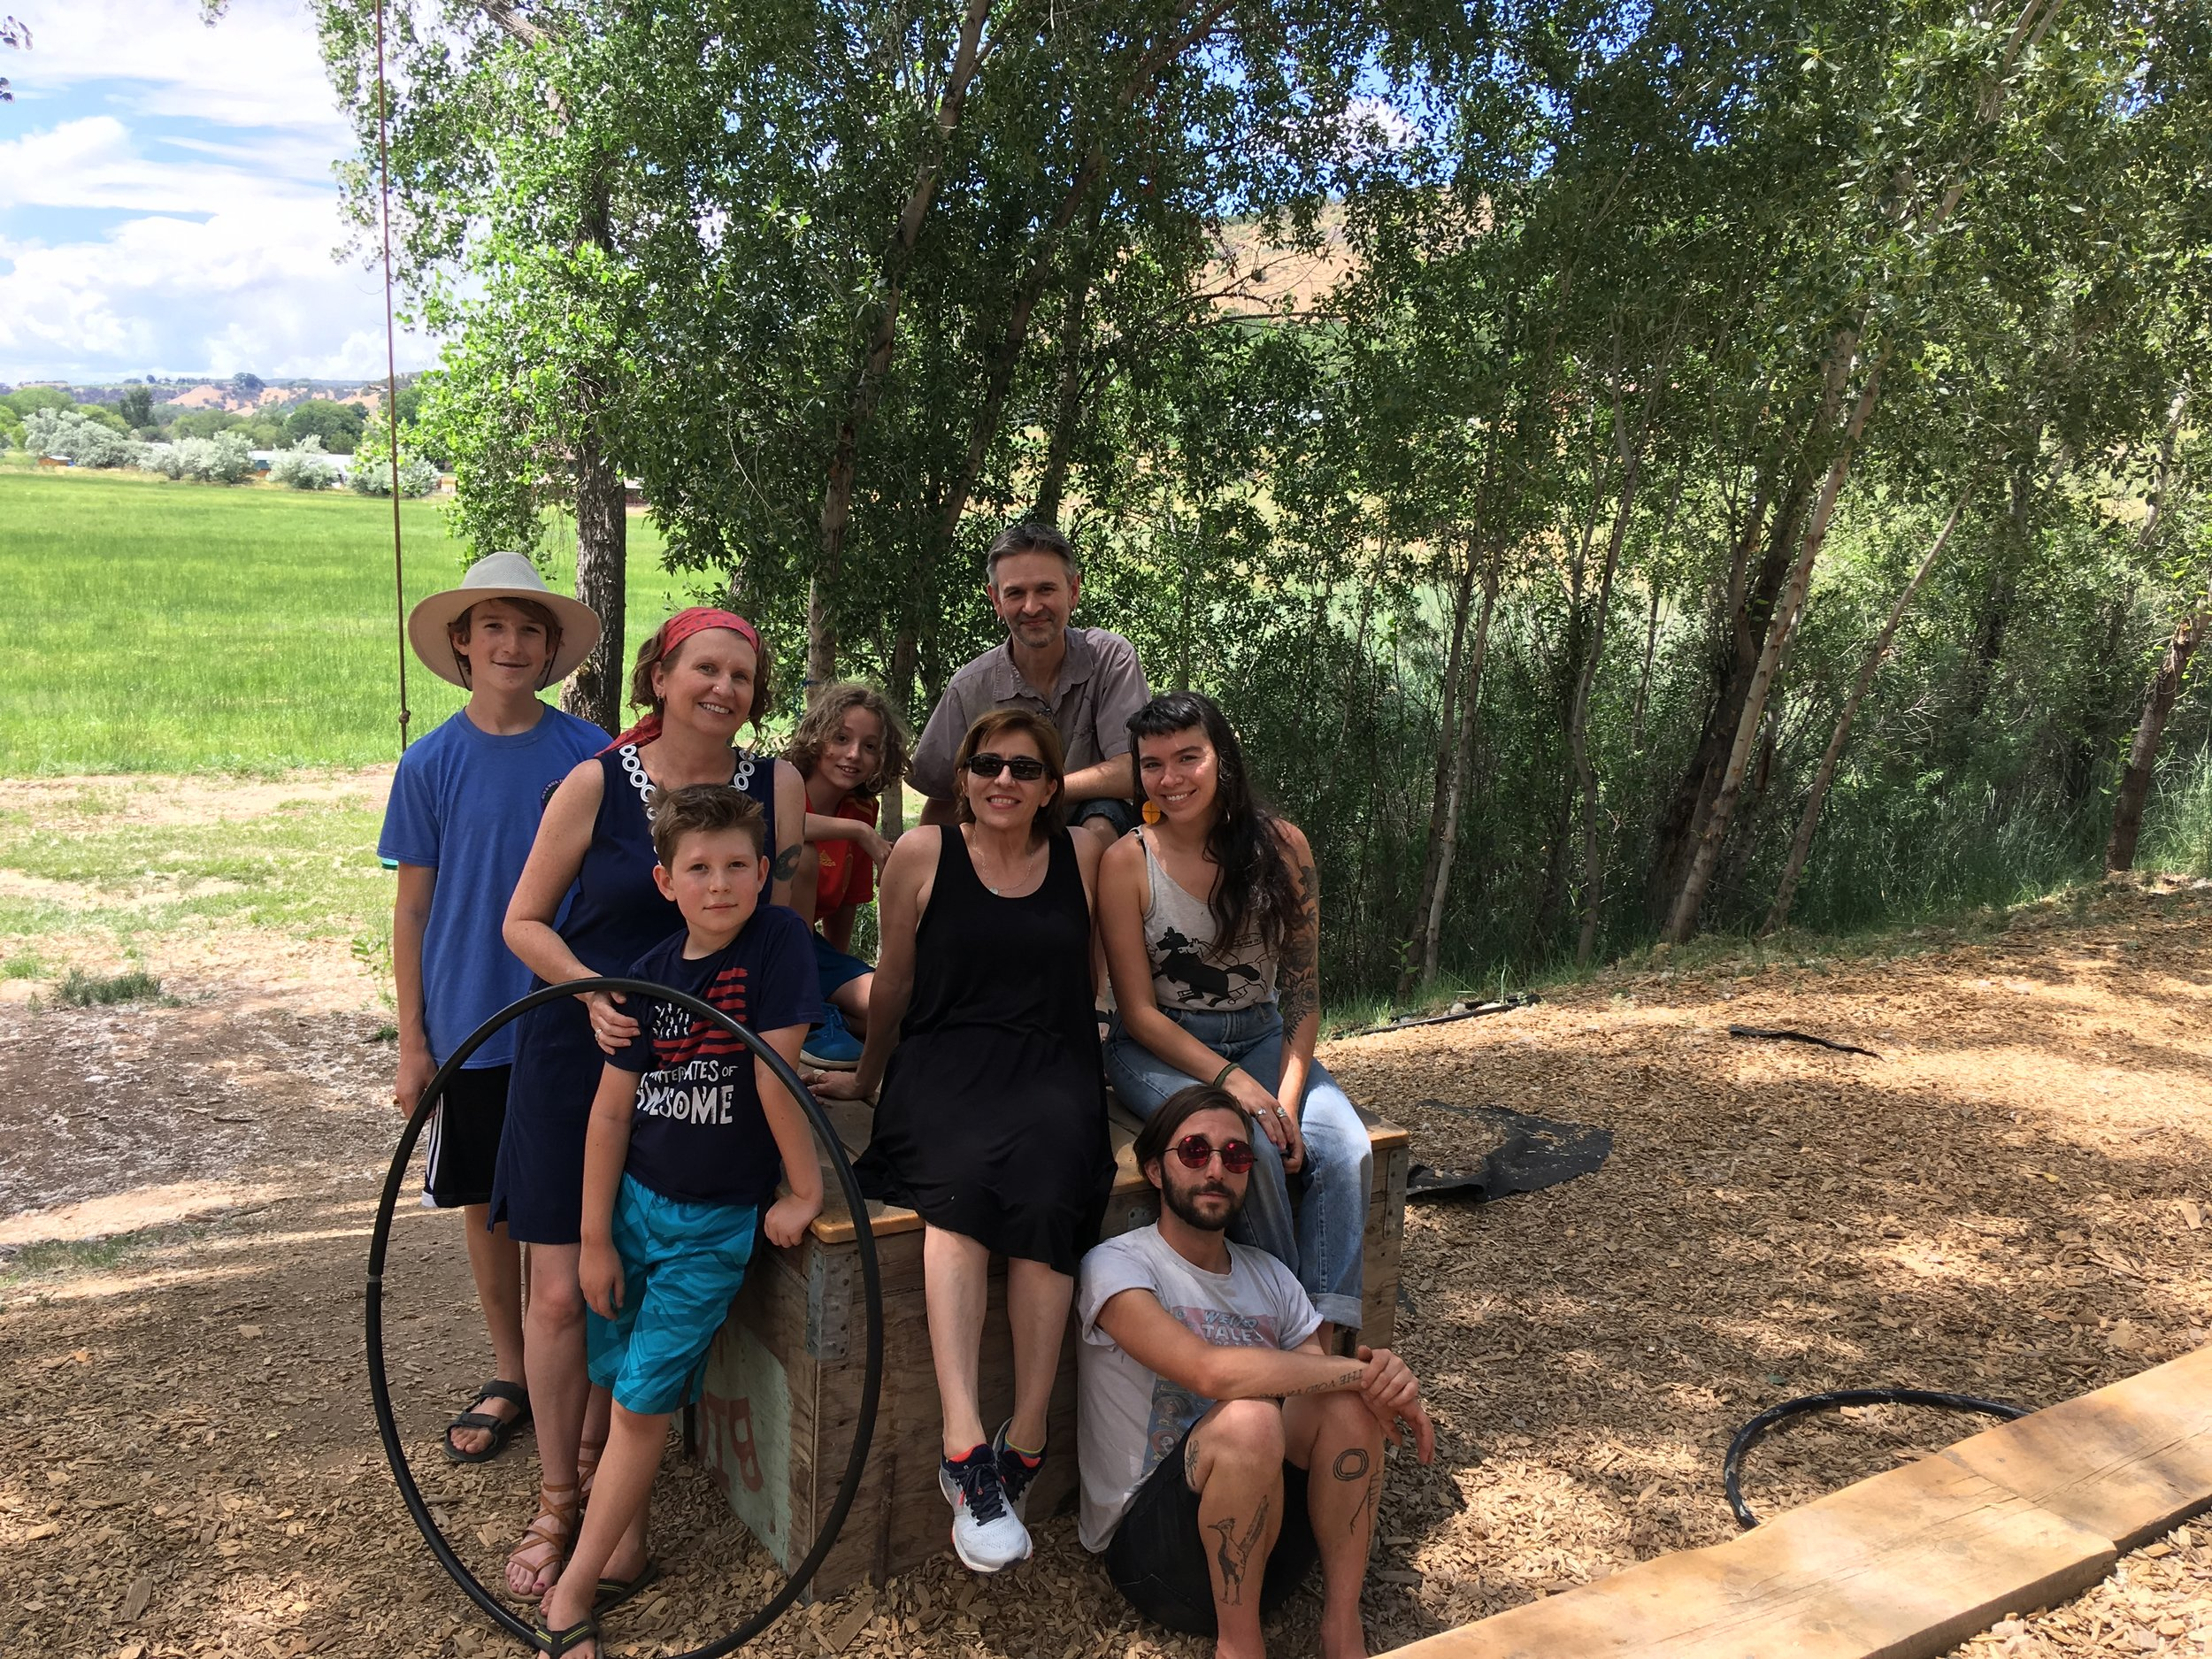 Resident Ginny Kaczmarek with her family: Ian, Emery, and Adrian, and Resident Maria Velasco with her son Alex. Sitting with Program Manager Henry Kunkel and Director Carolina Porras after a Sunday brunch at Delicious Orchards, a morning shared with tasty food, swings and hula hoops.